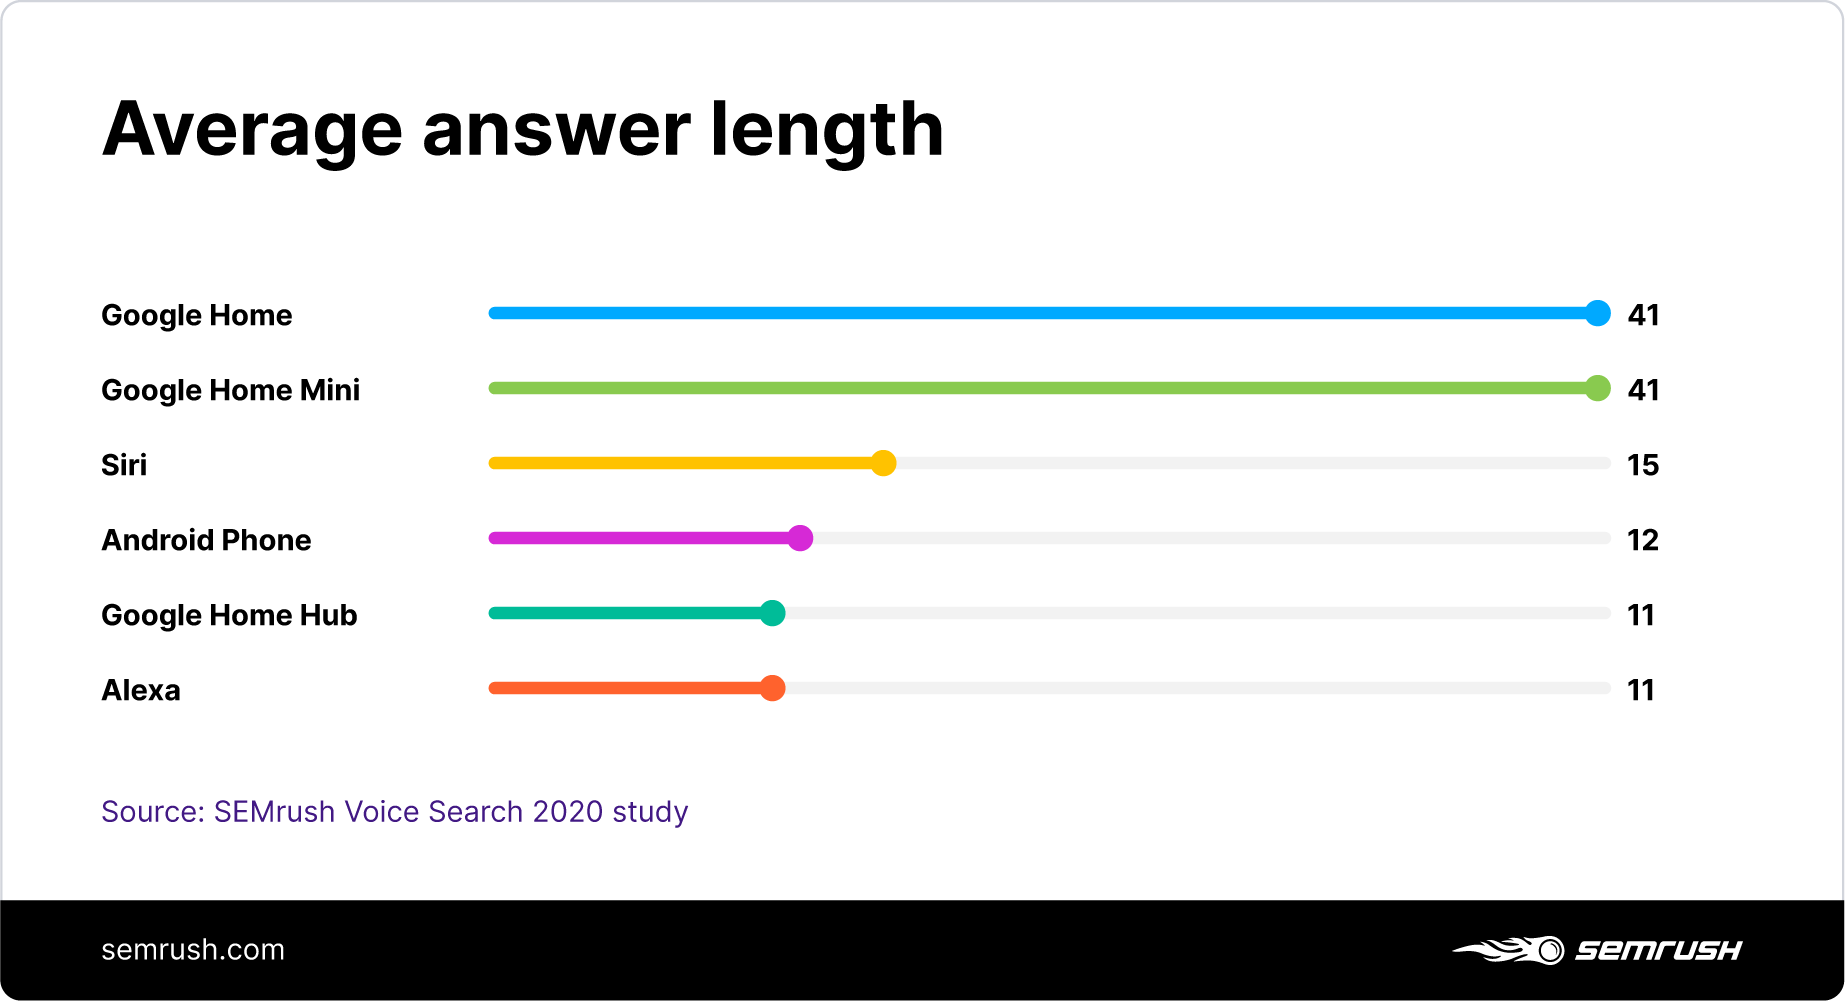 Average answer length of voice assistants